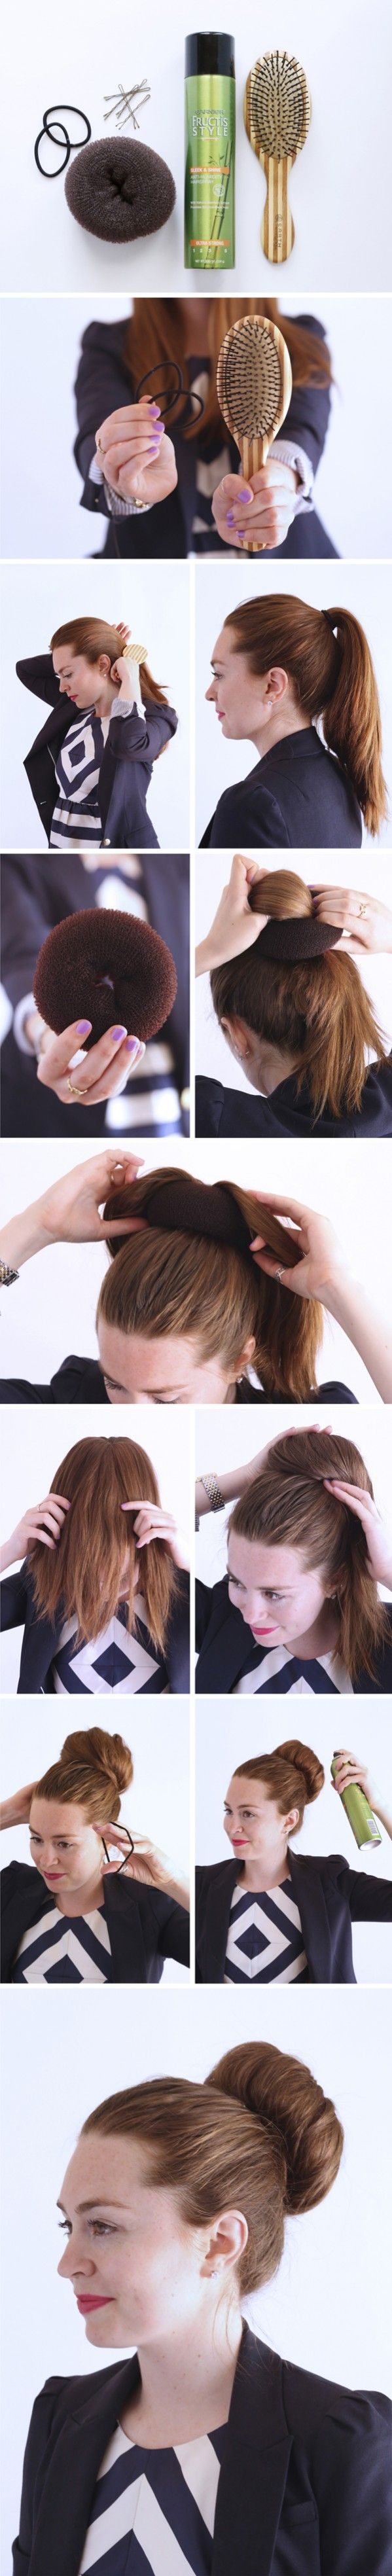 Step by step guide to getting the perfect bun, using none other than my trusty bun donut!